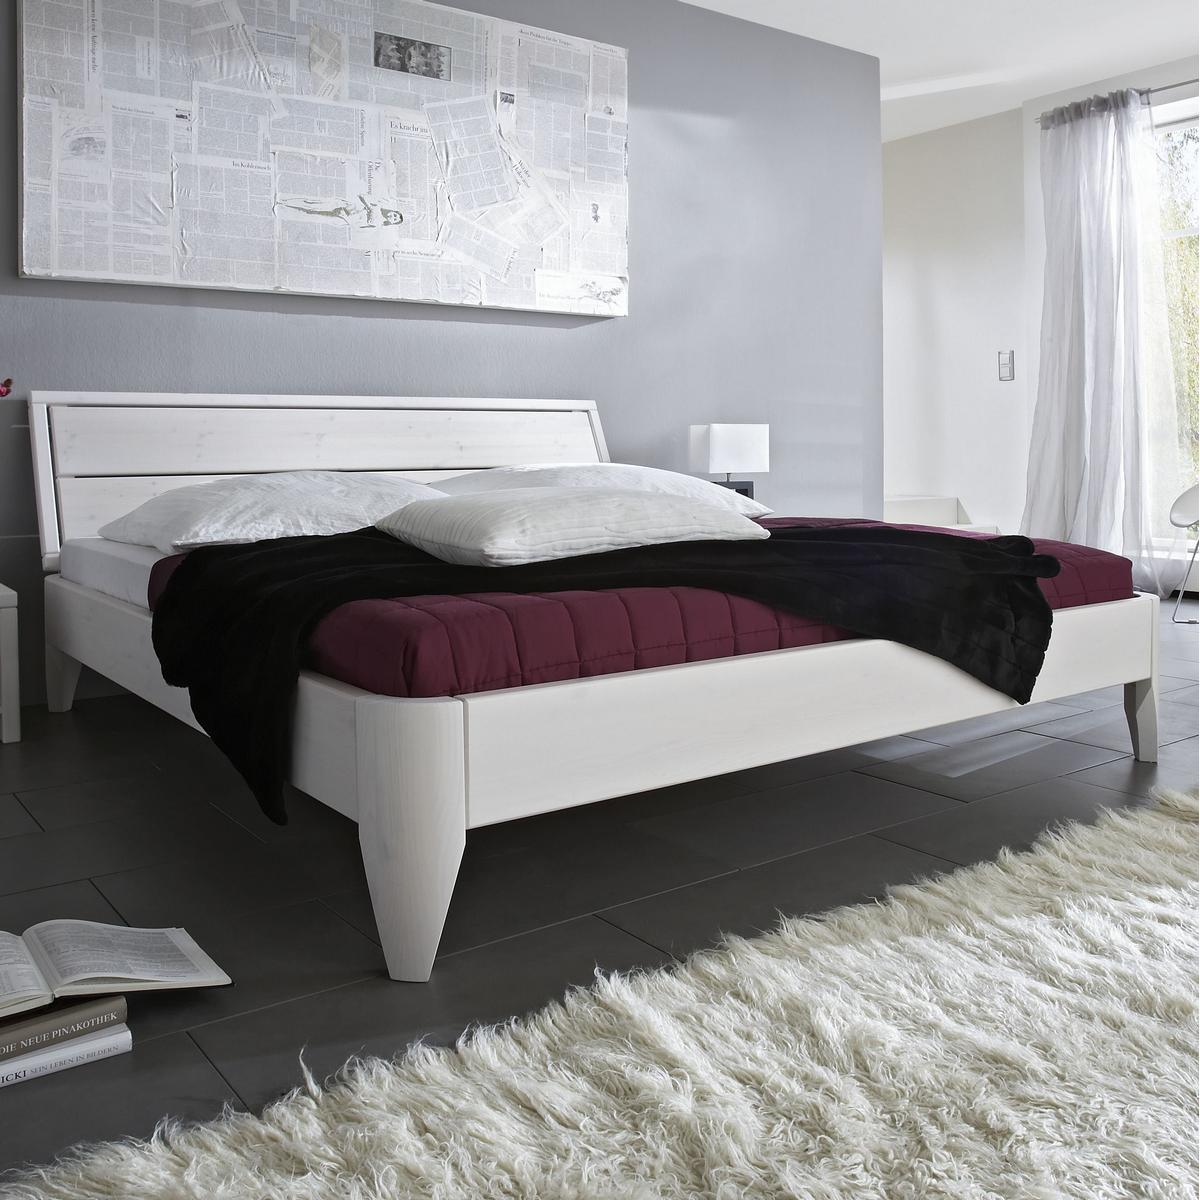 bett kiefer massiv weis die neueste innovation der innenarchitektur und m bel. Black Bedroom Furniture Sets. Home Design Ideas